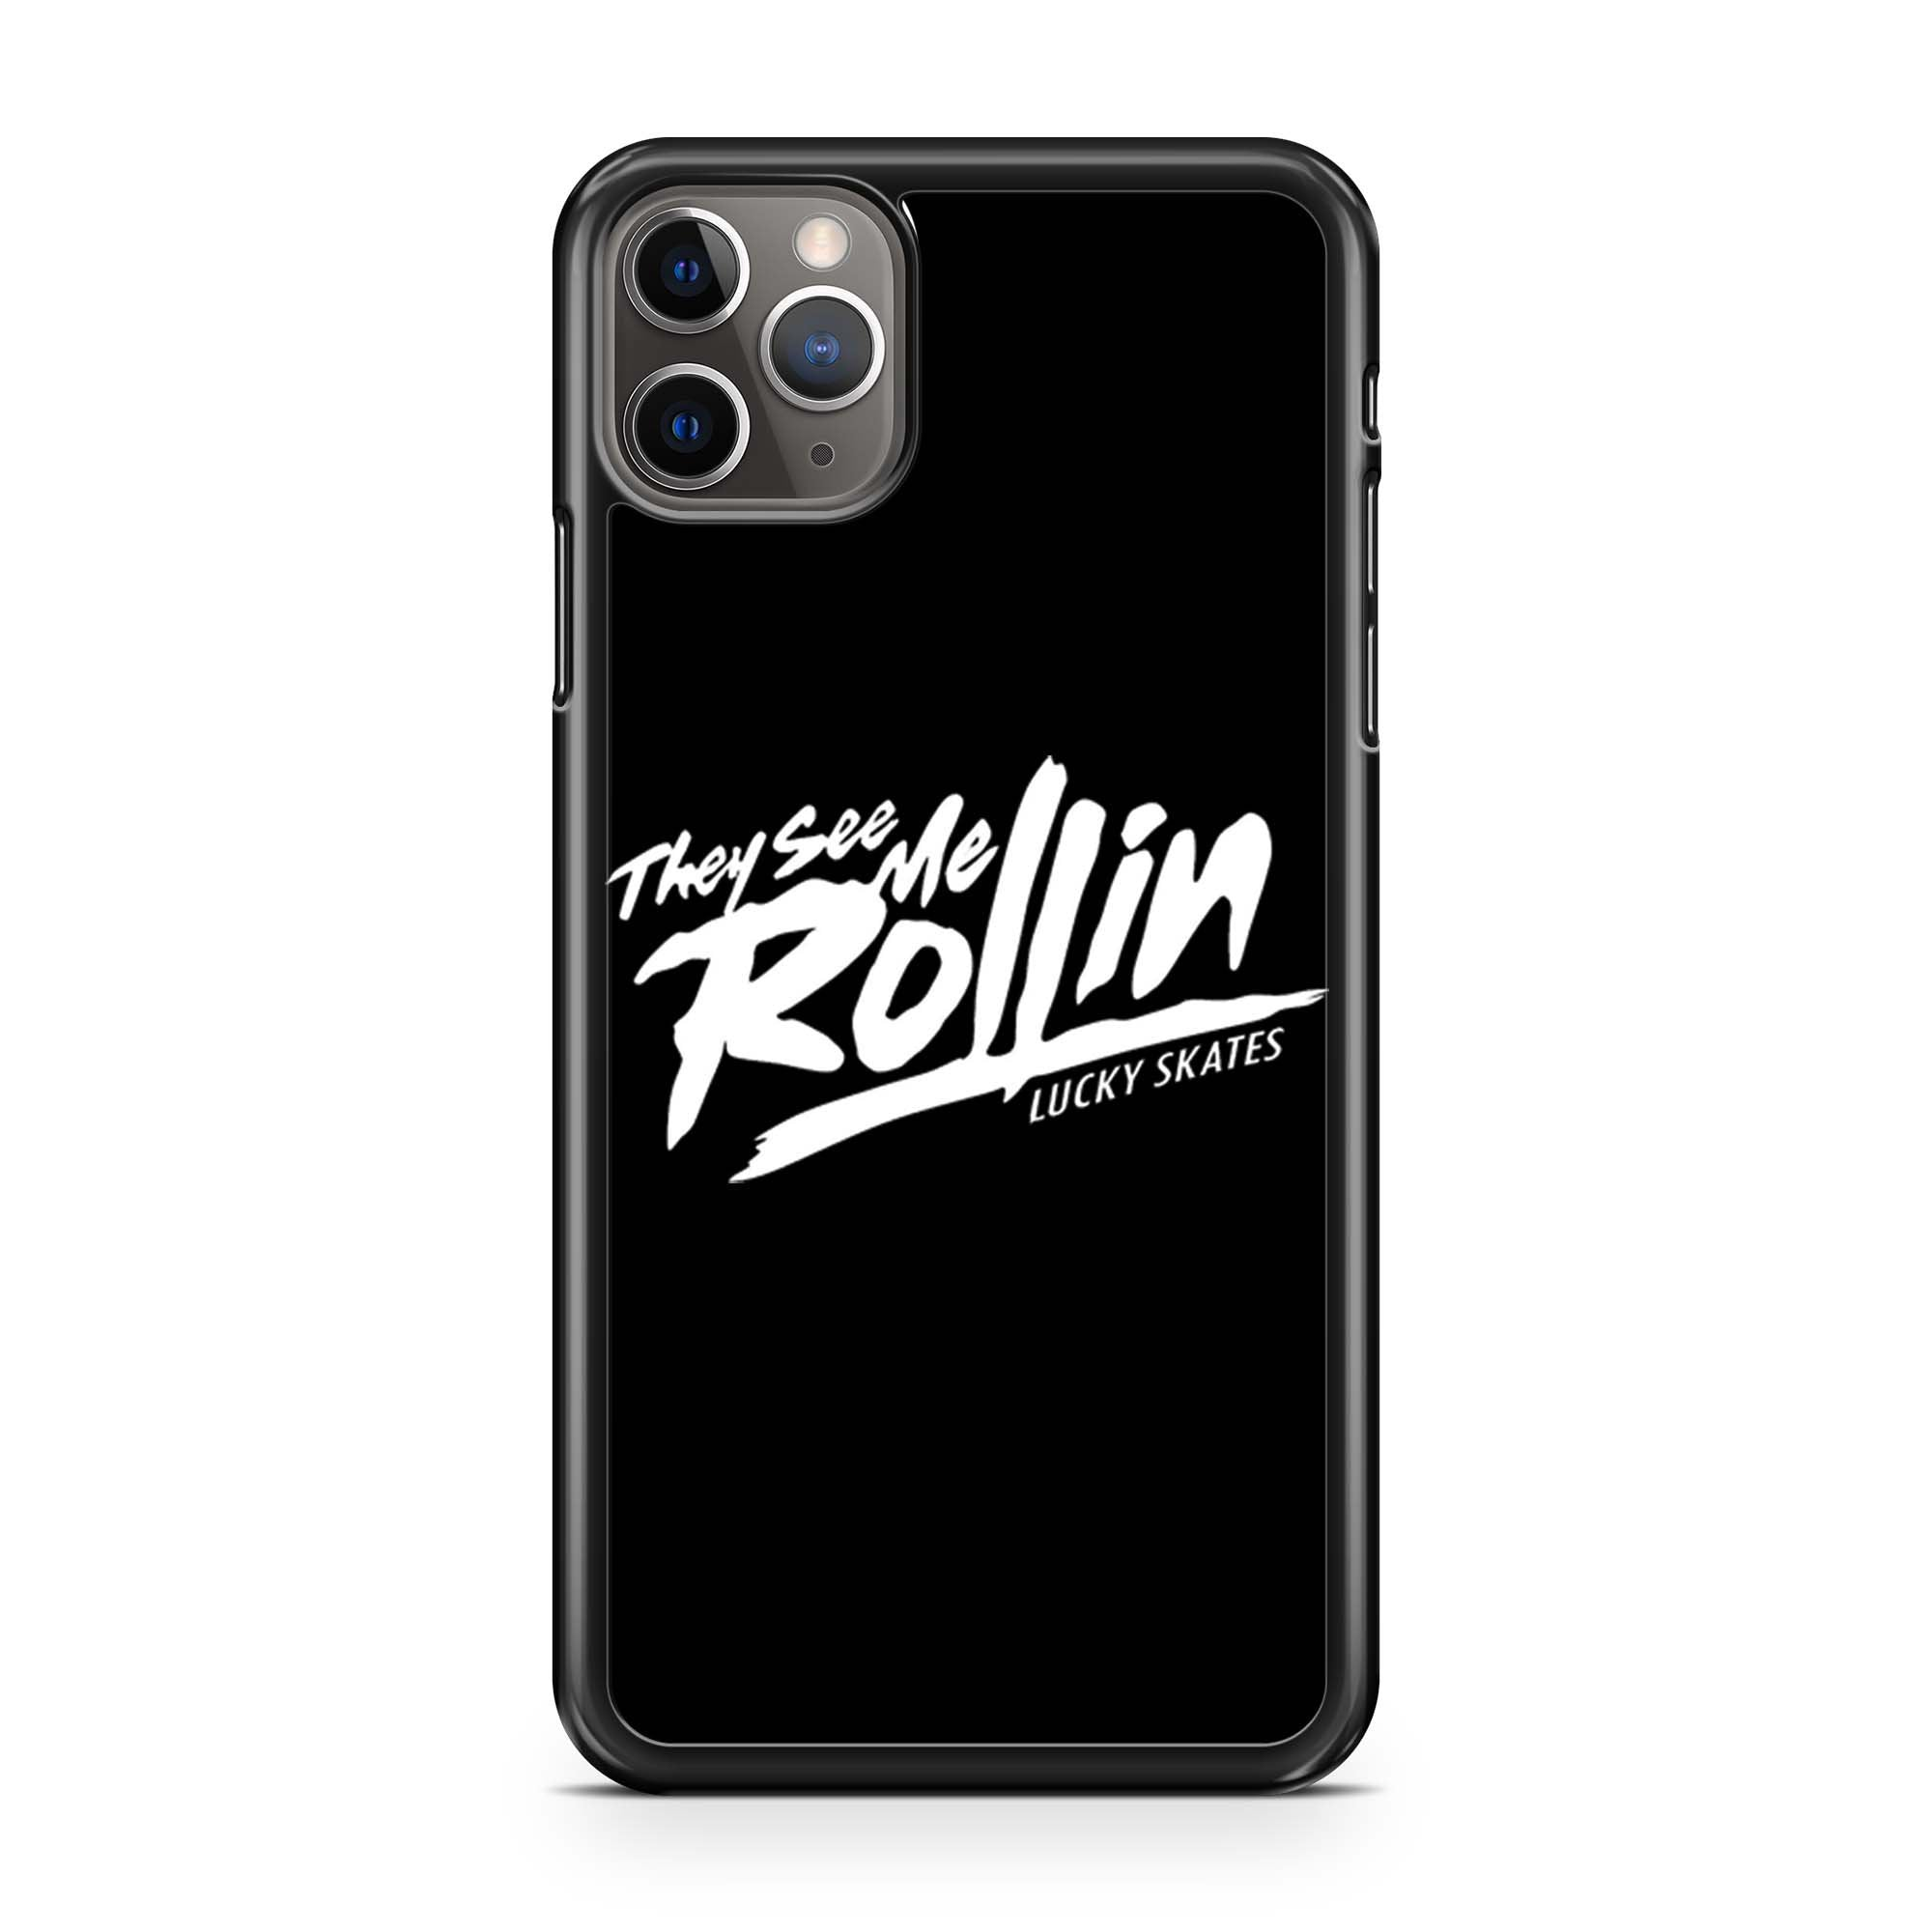 They See Me Rollin Lucky Skates iPhone 11 Pro Max Case